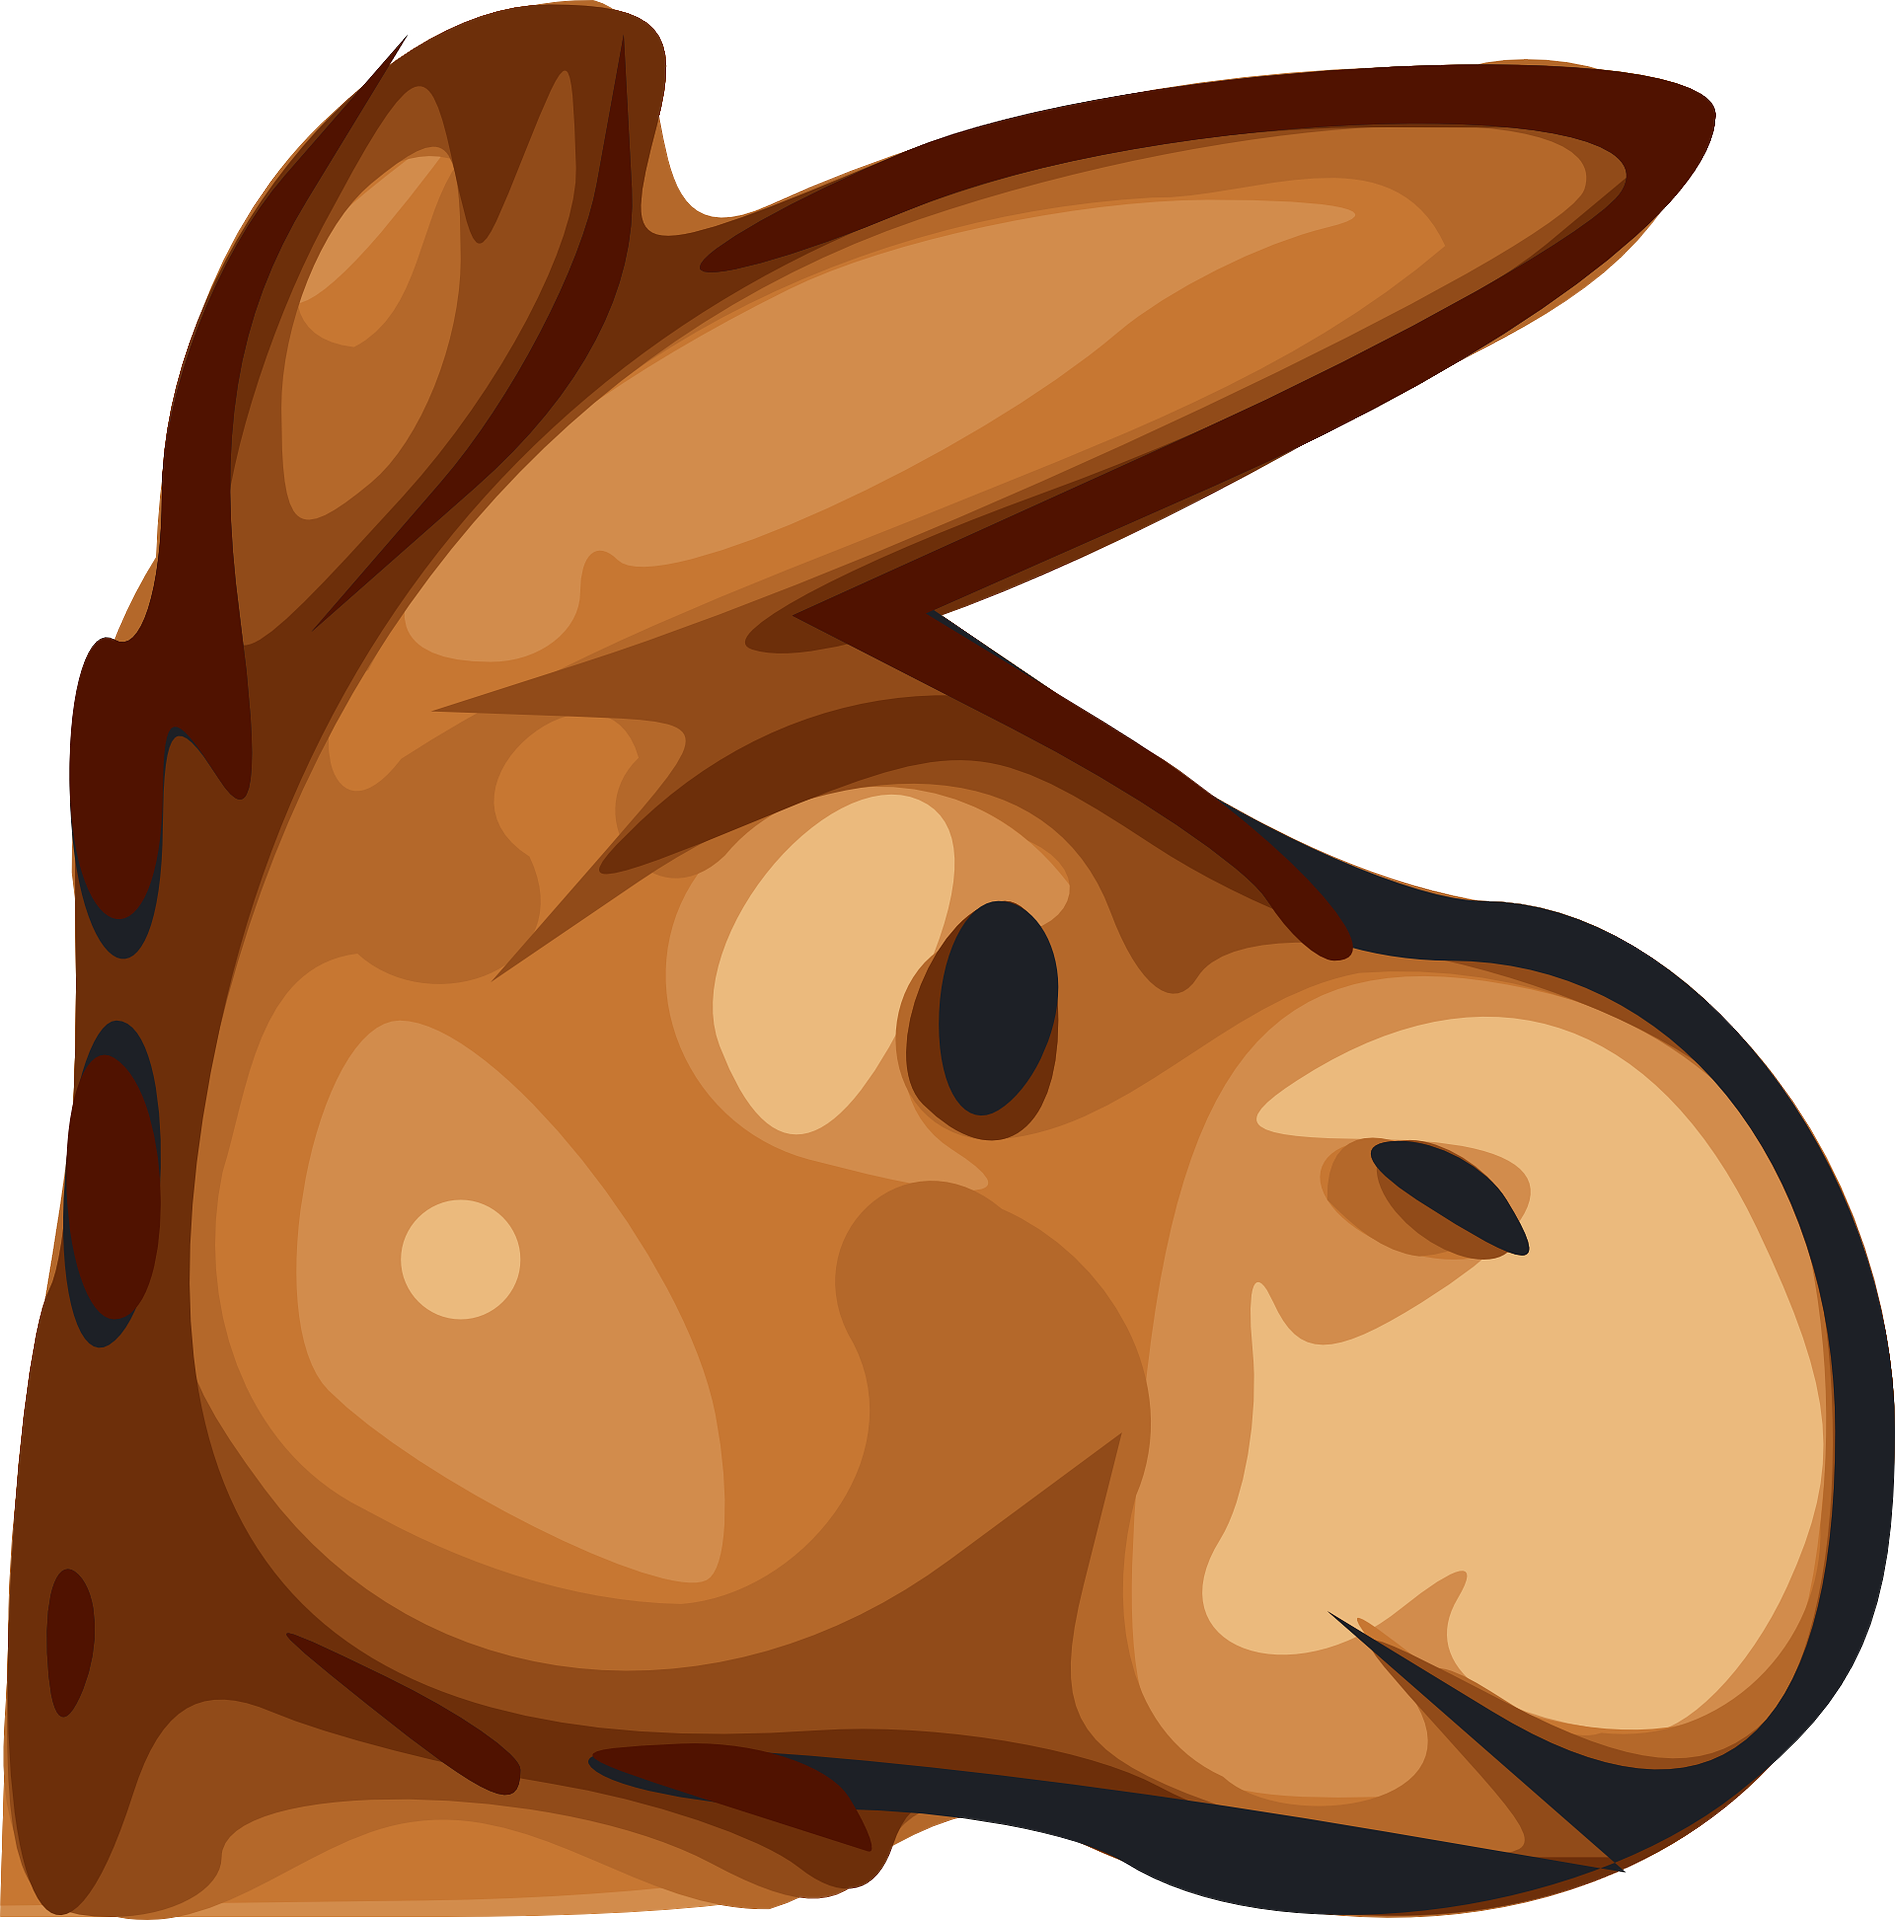 freeuse library Free image . Mule clipart brown.